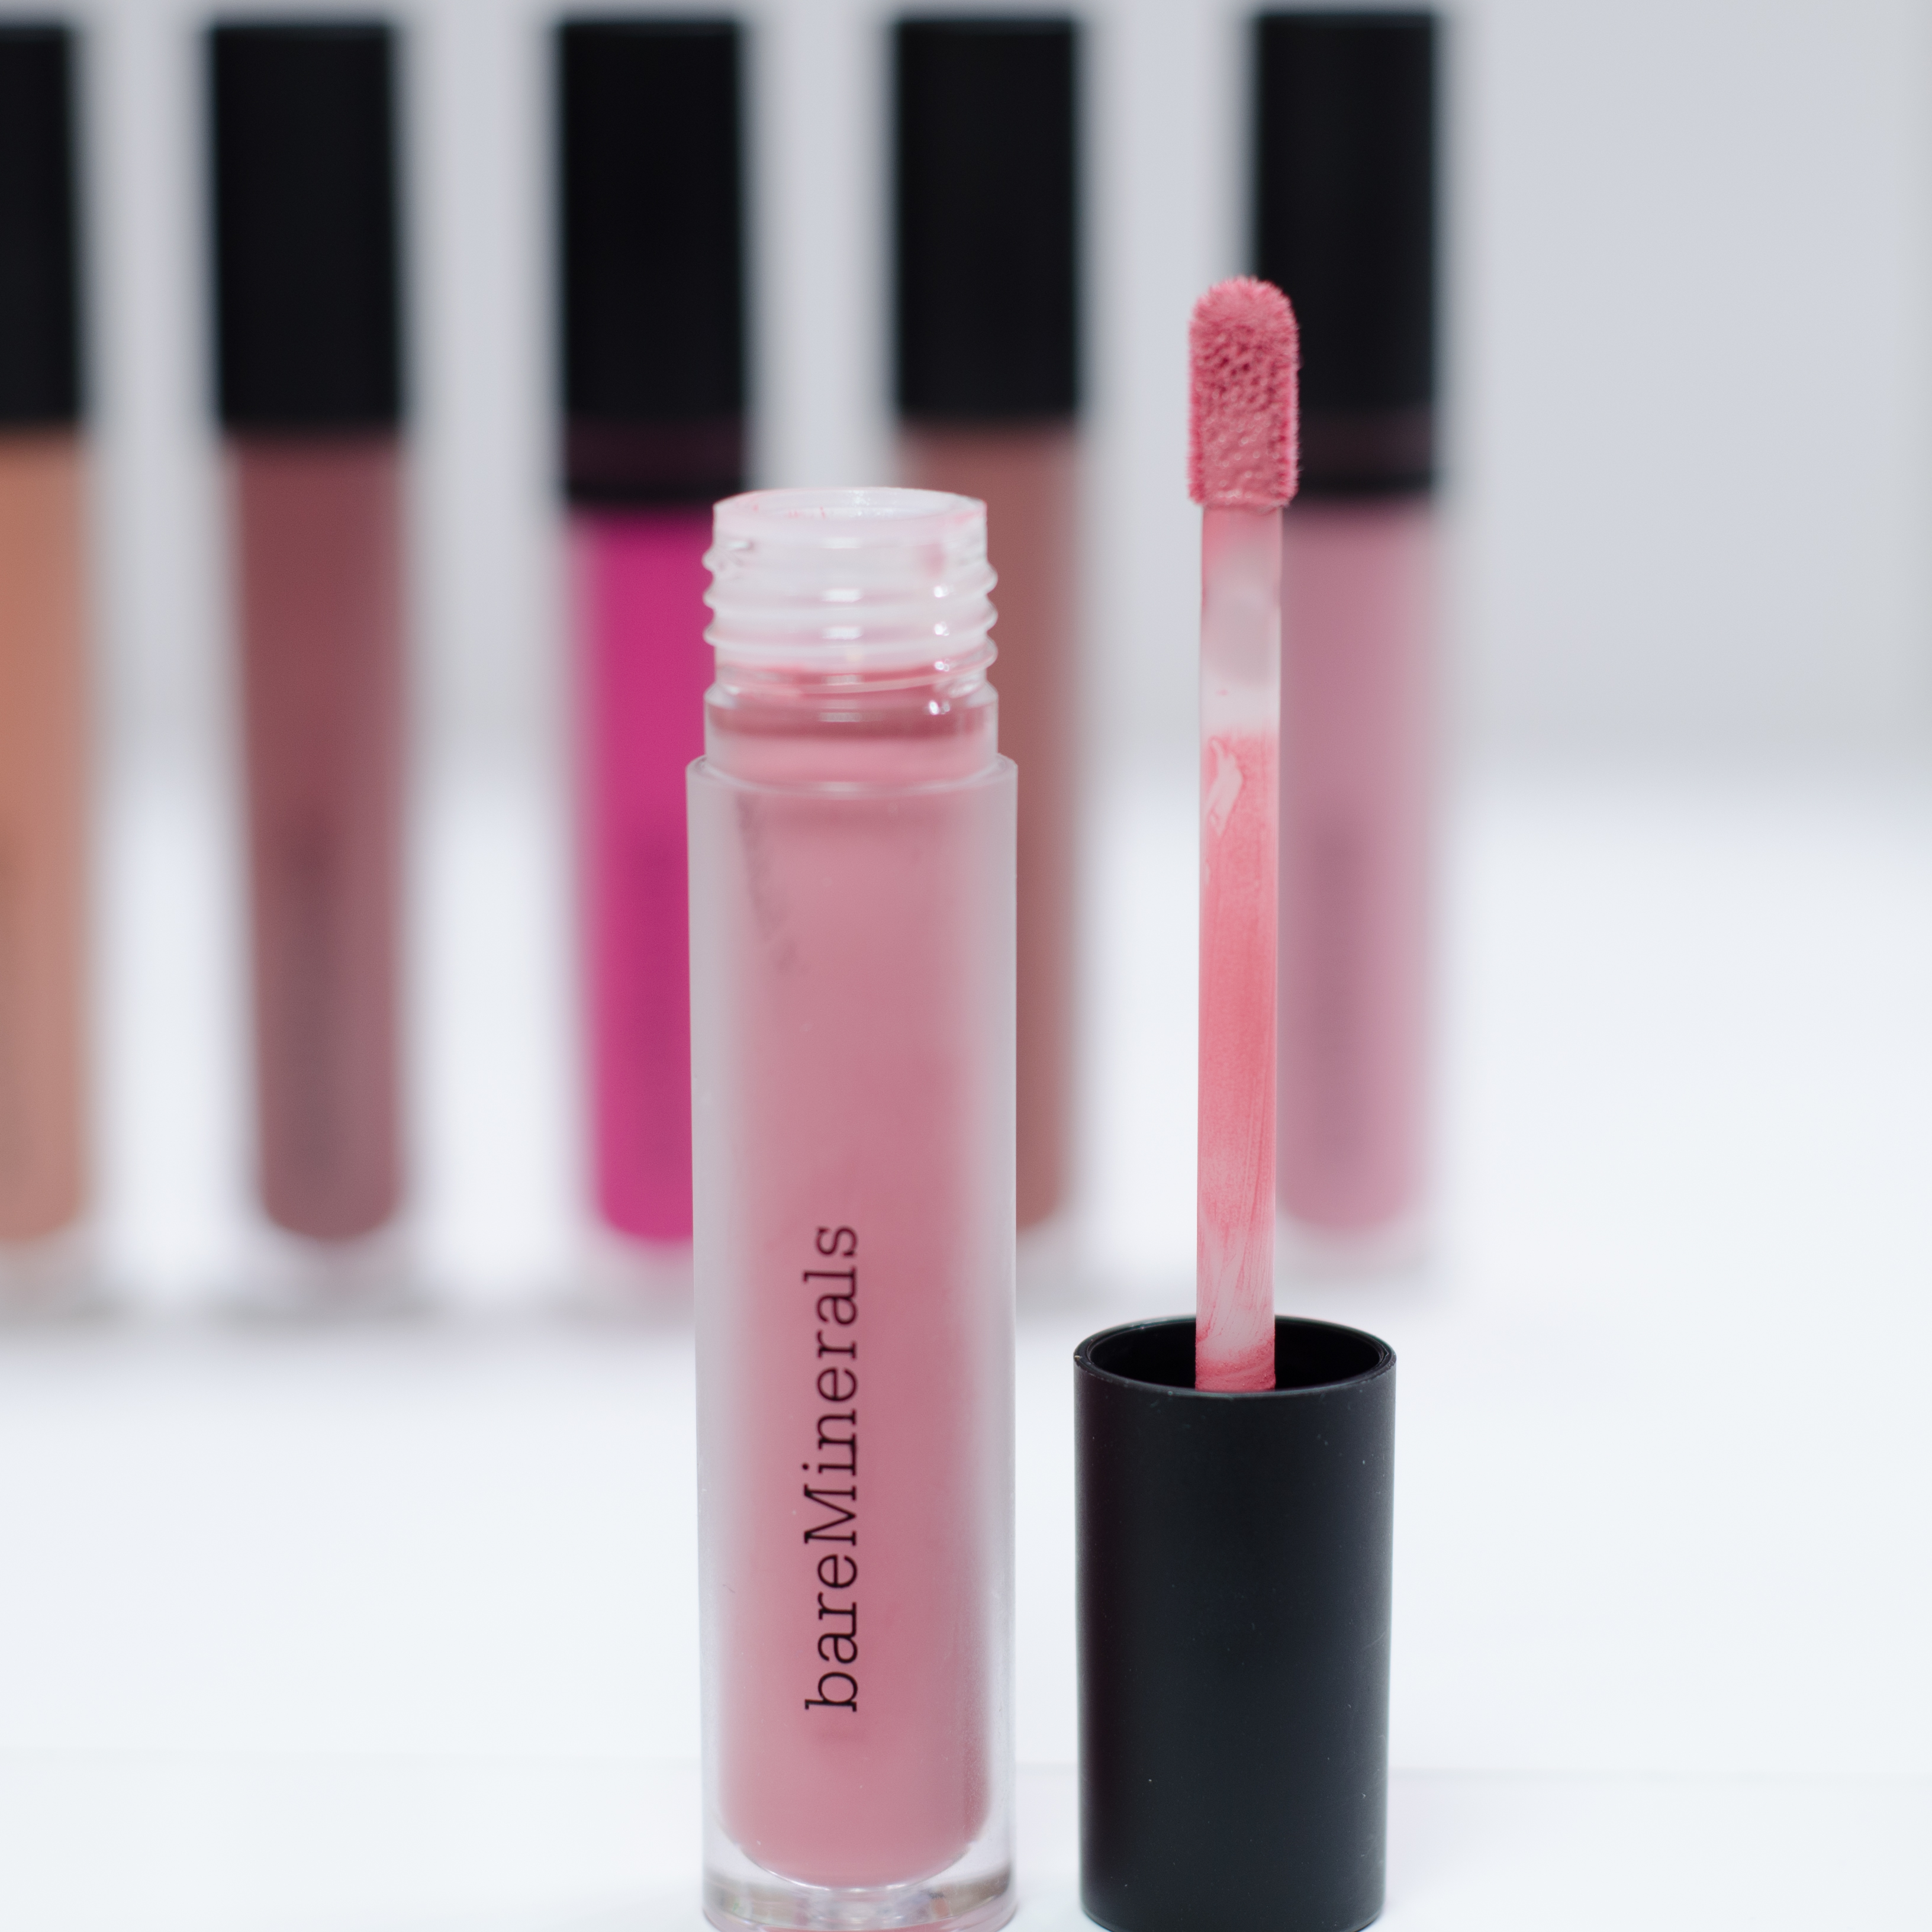 Bare Minerals Lip Product Reviews Swatches